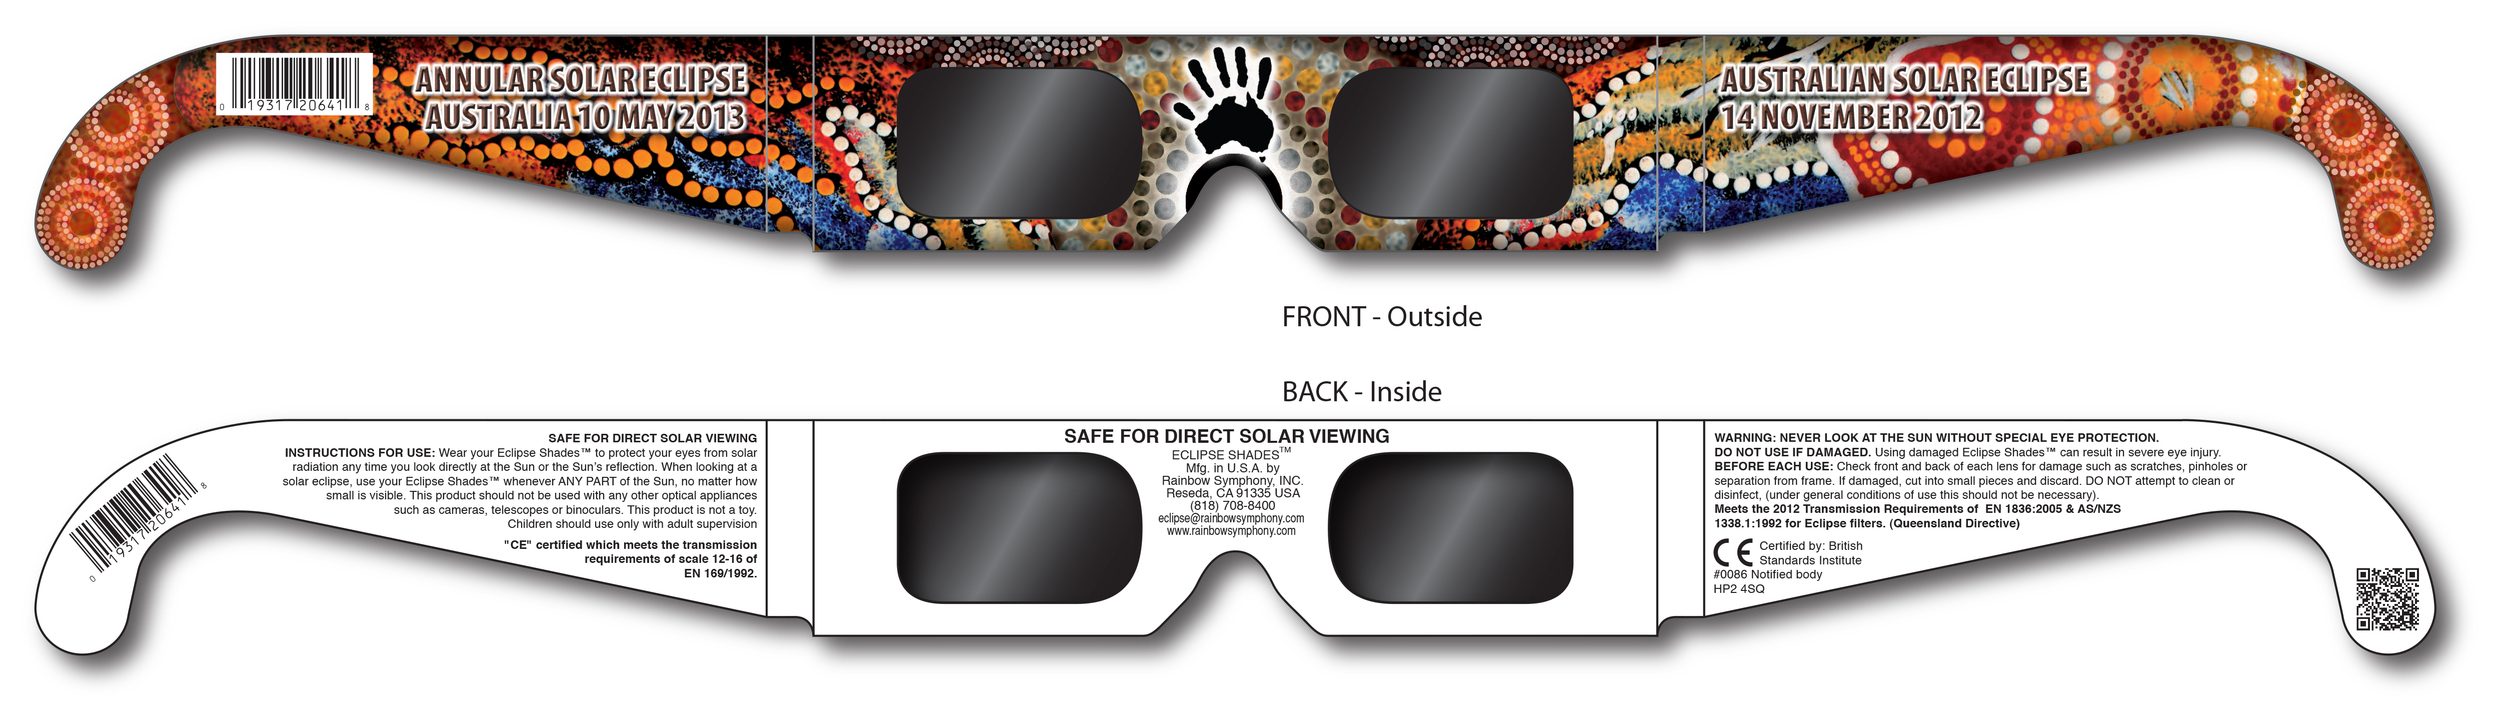 Eclipse Australia 2012 - Aboriginal Design